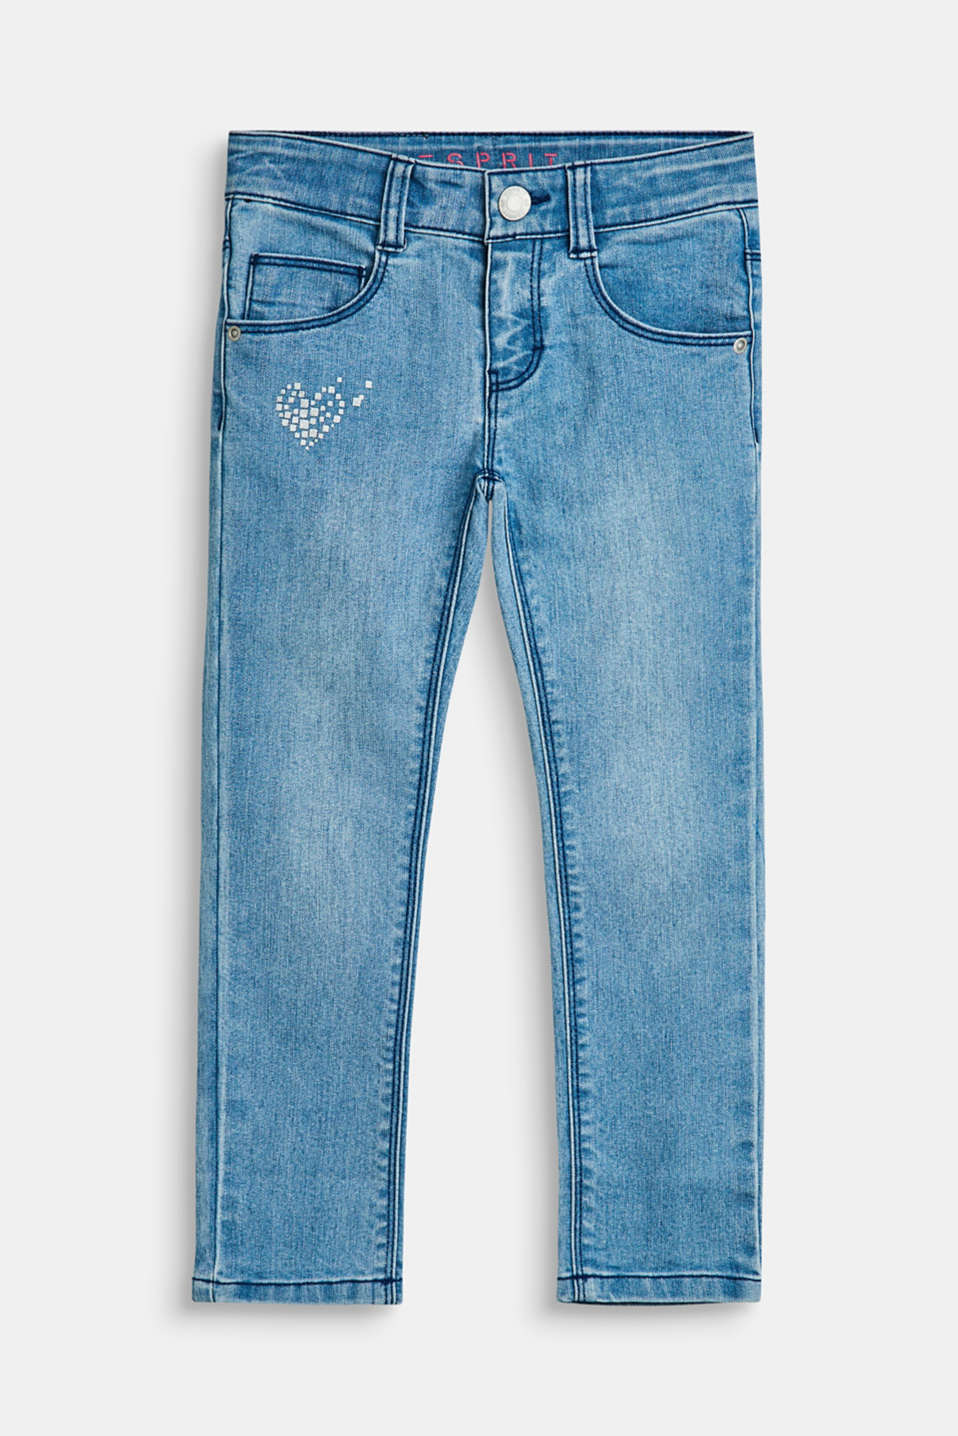 Esprit - Stretch jeans with a heart print and an adjustable waistband